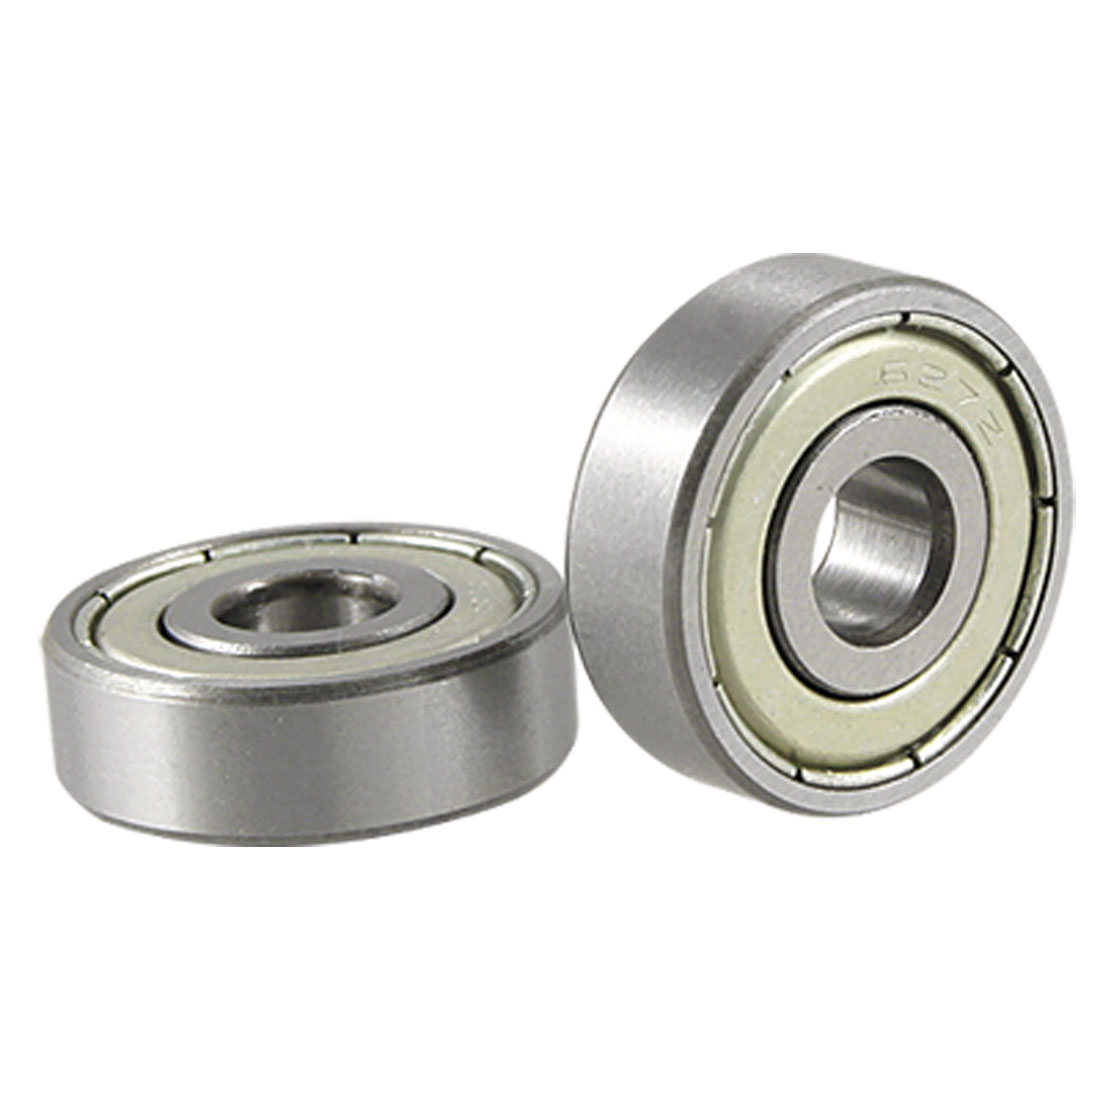 2 Pcs 627Z 7 x 22 x 7 Miniature Deep Groove Bearings